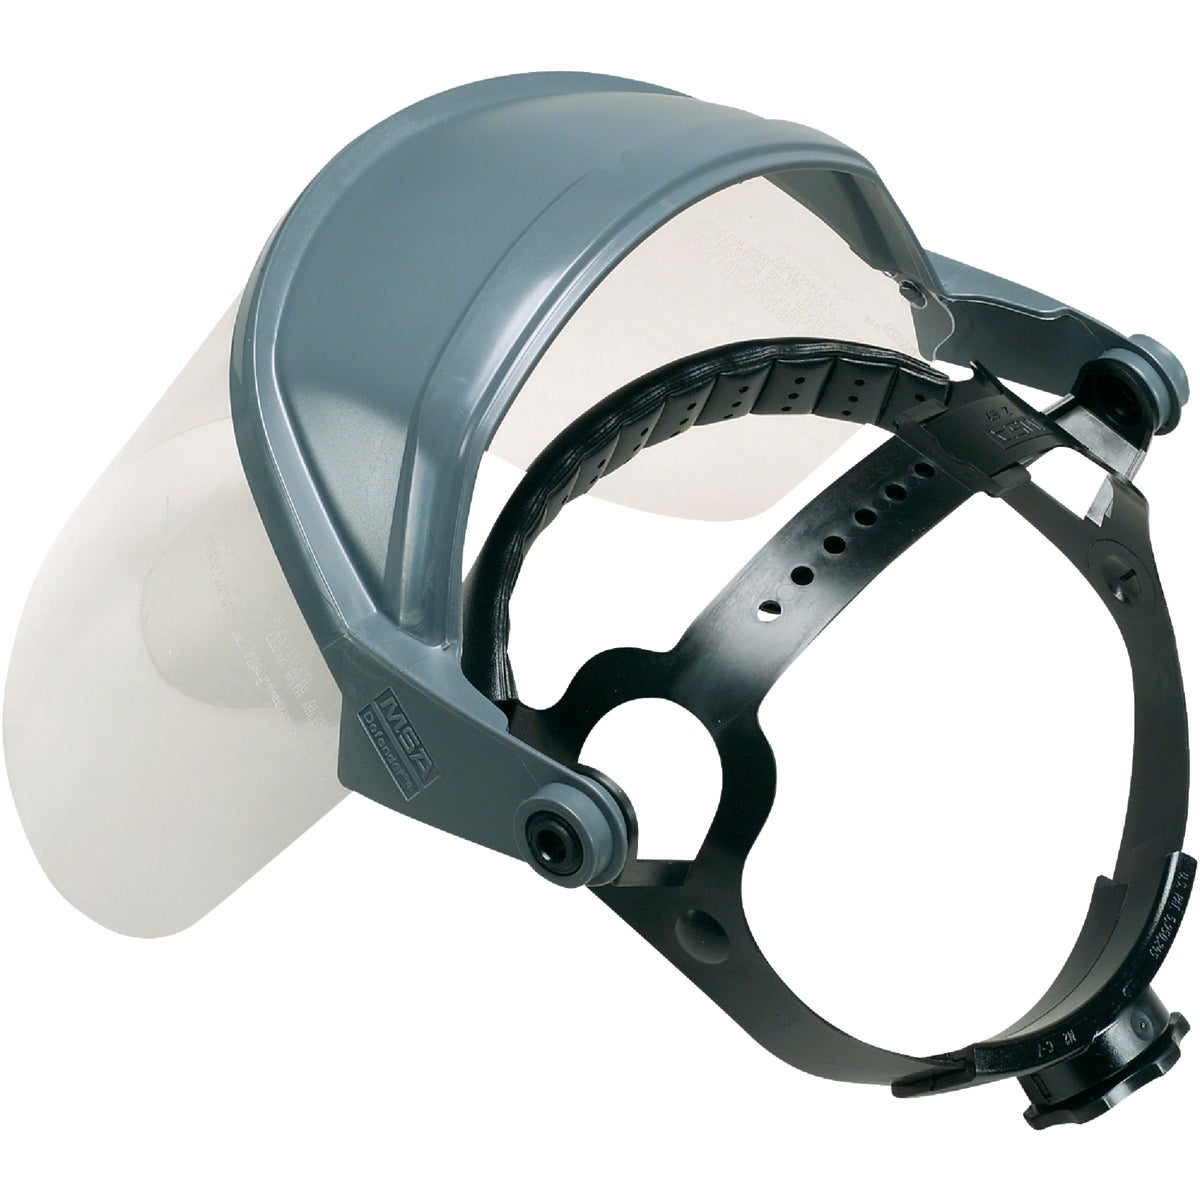 VISOR FACE SHIELD - 10103487 by Msa Safety